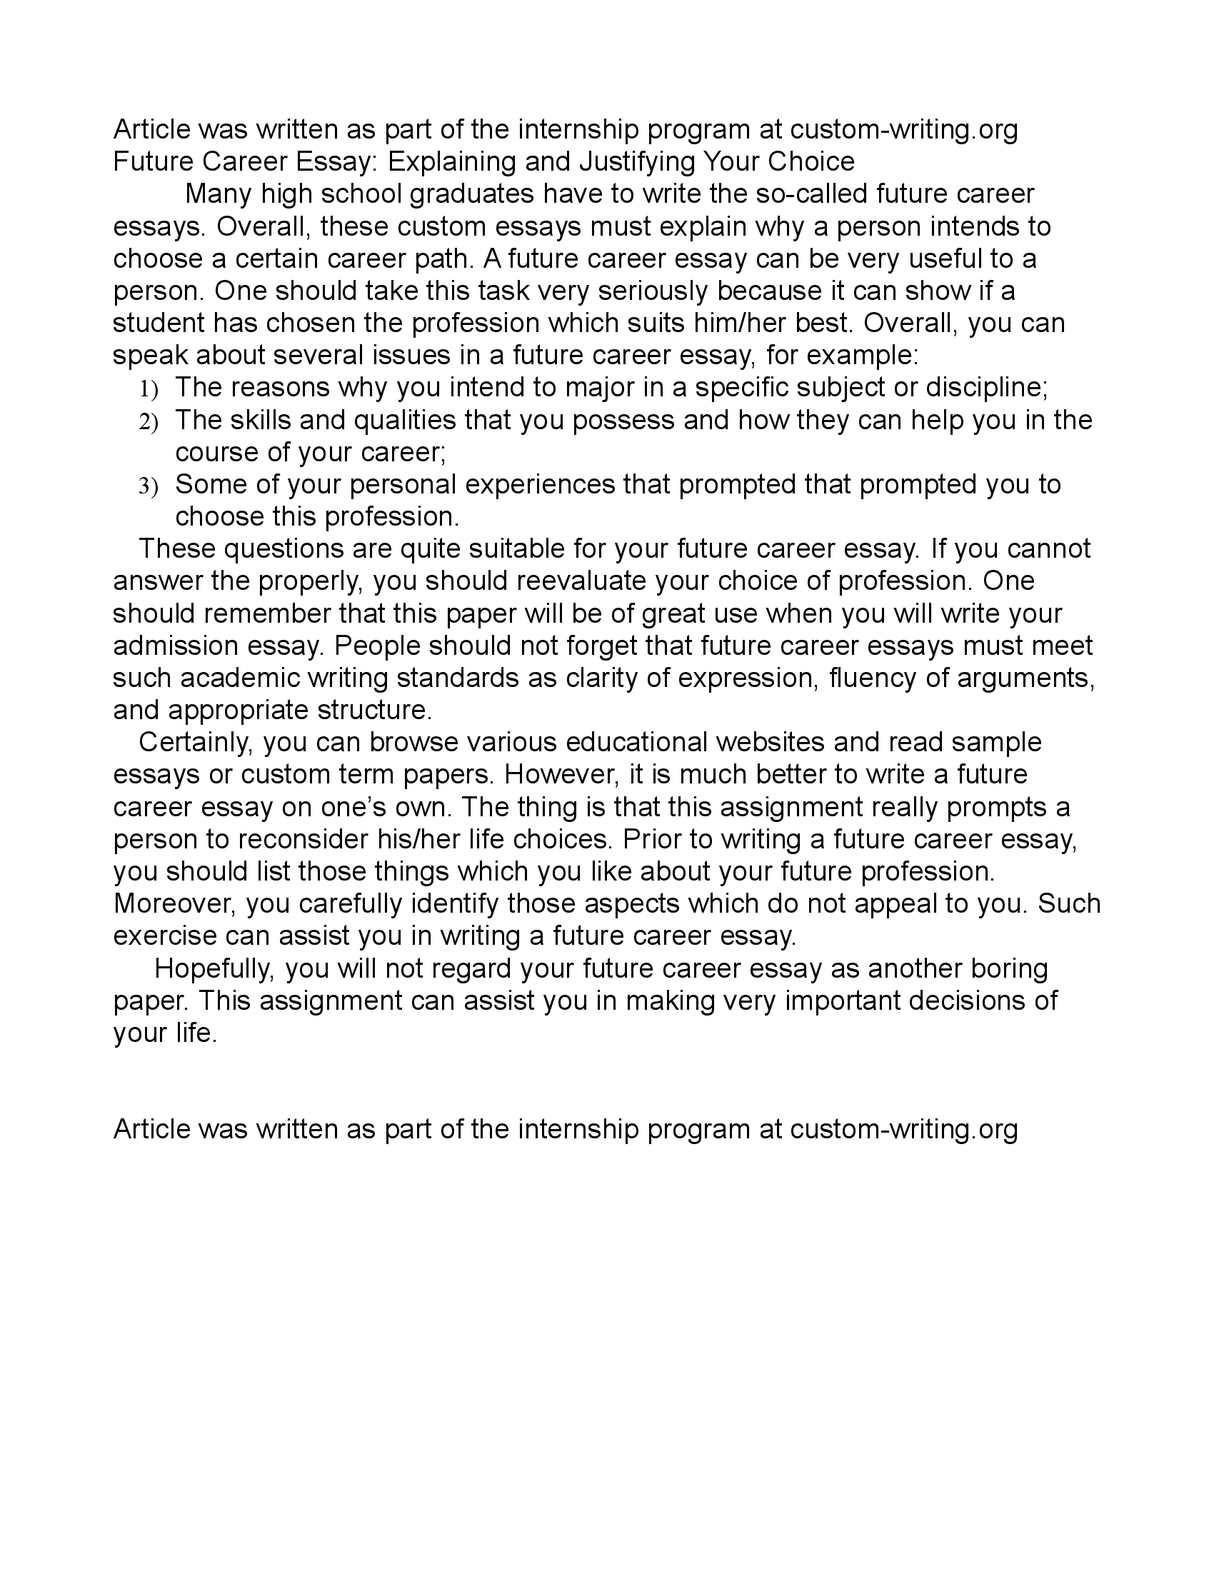 essay about your future career